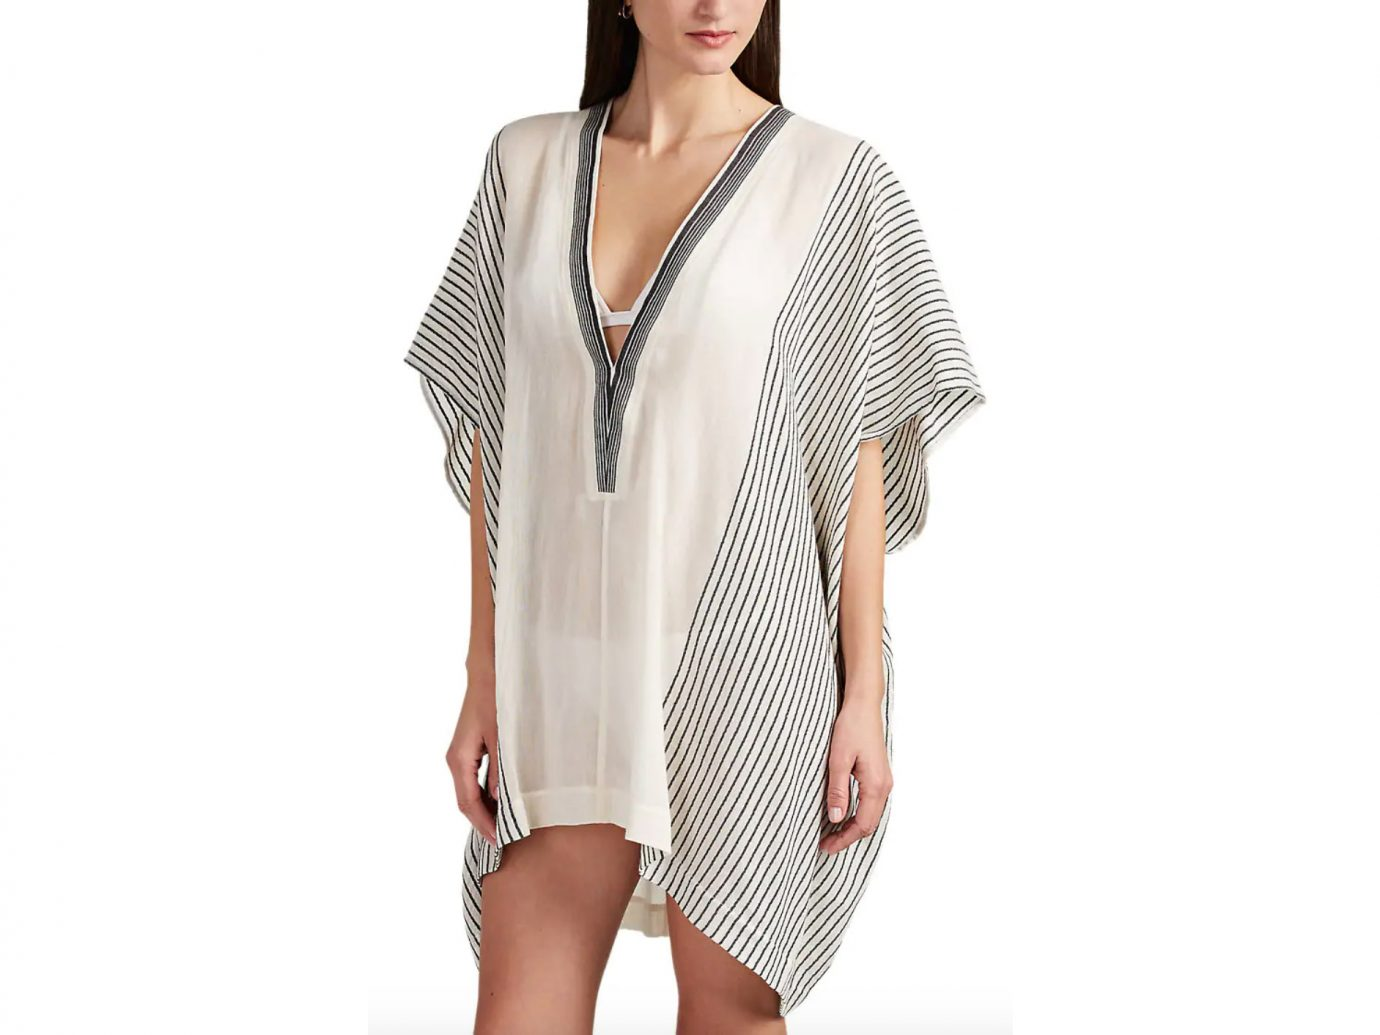 SU Lamu Striped Cotton Gauze Short Caftan